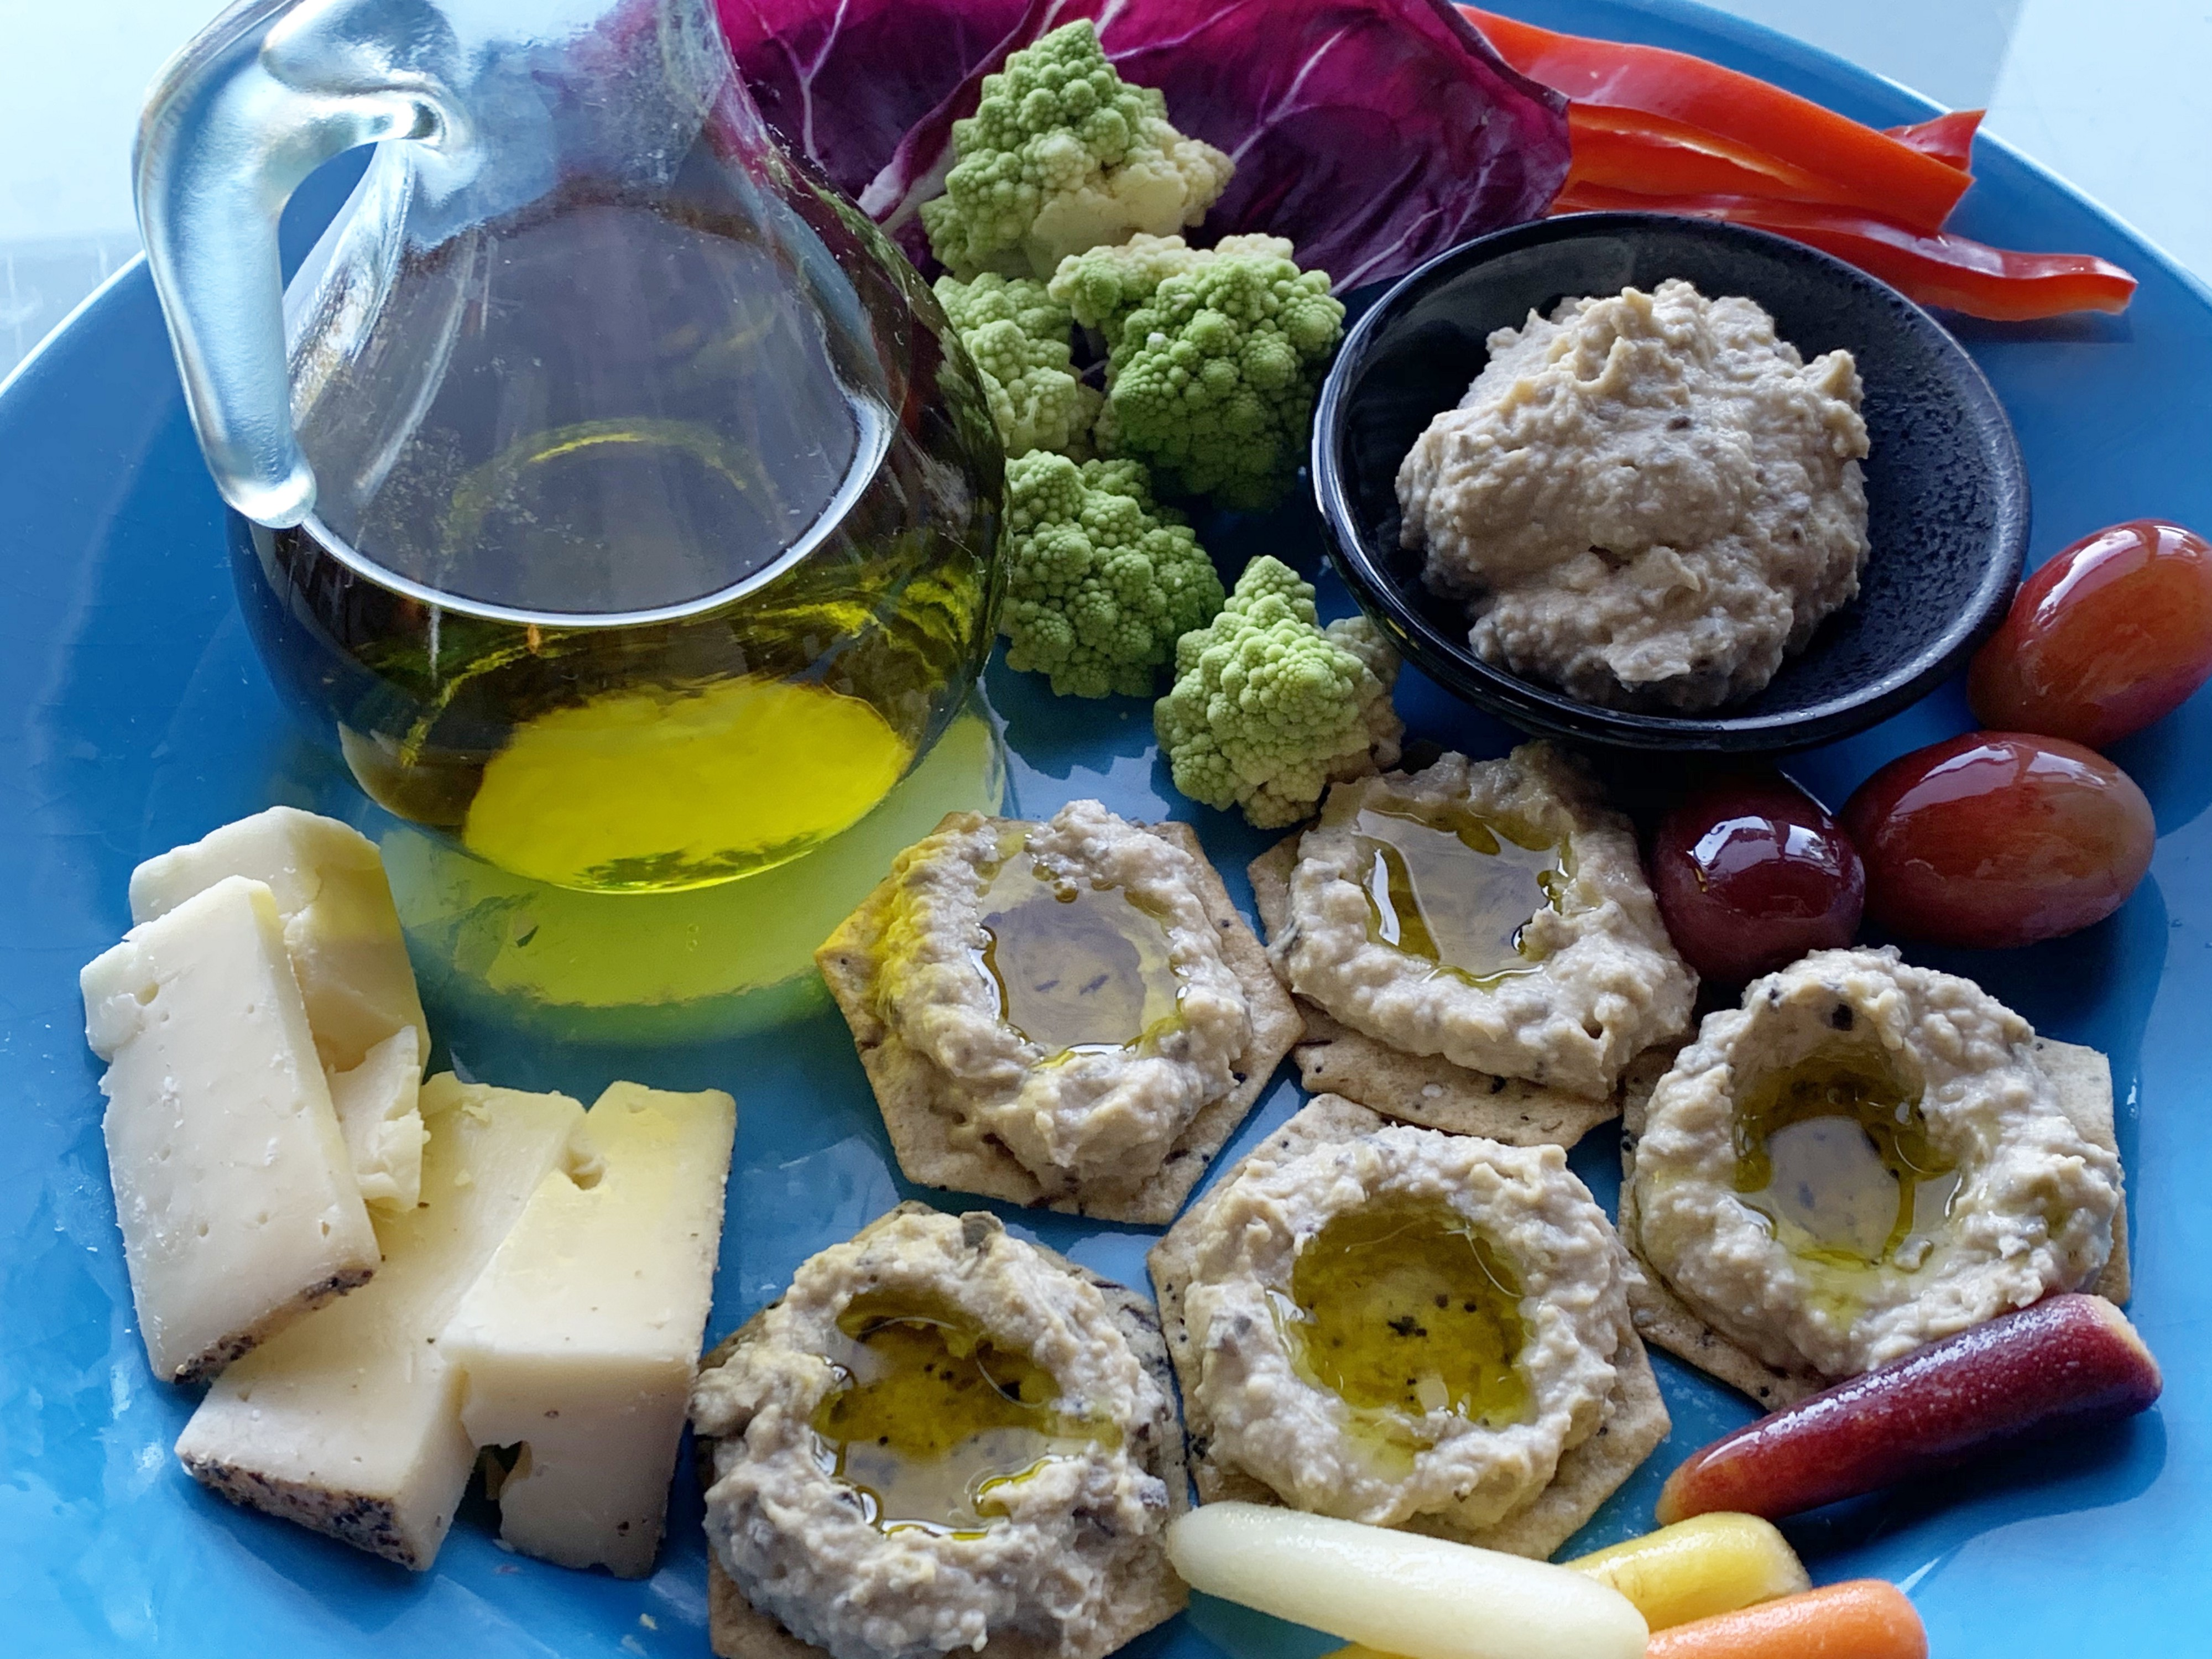 Snack of olive oil, hummus, crackers, and vegetables